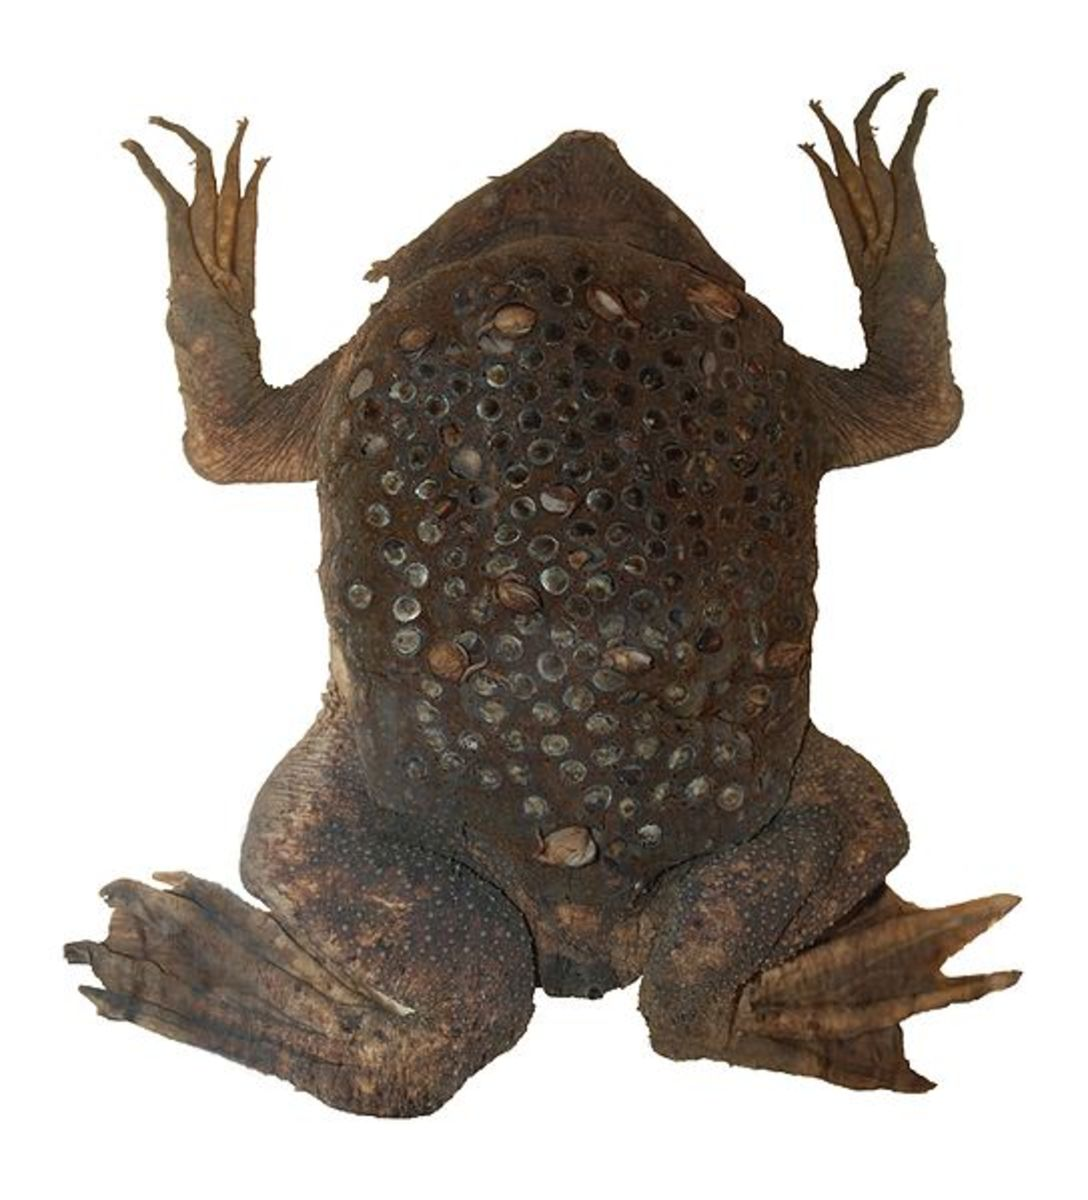 Surinam toad with 'embedded' toad lets